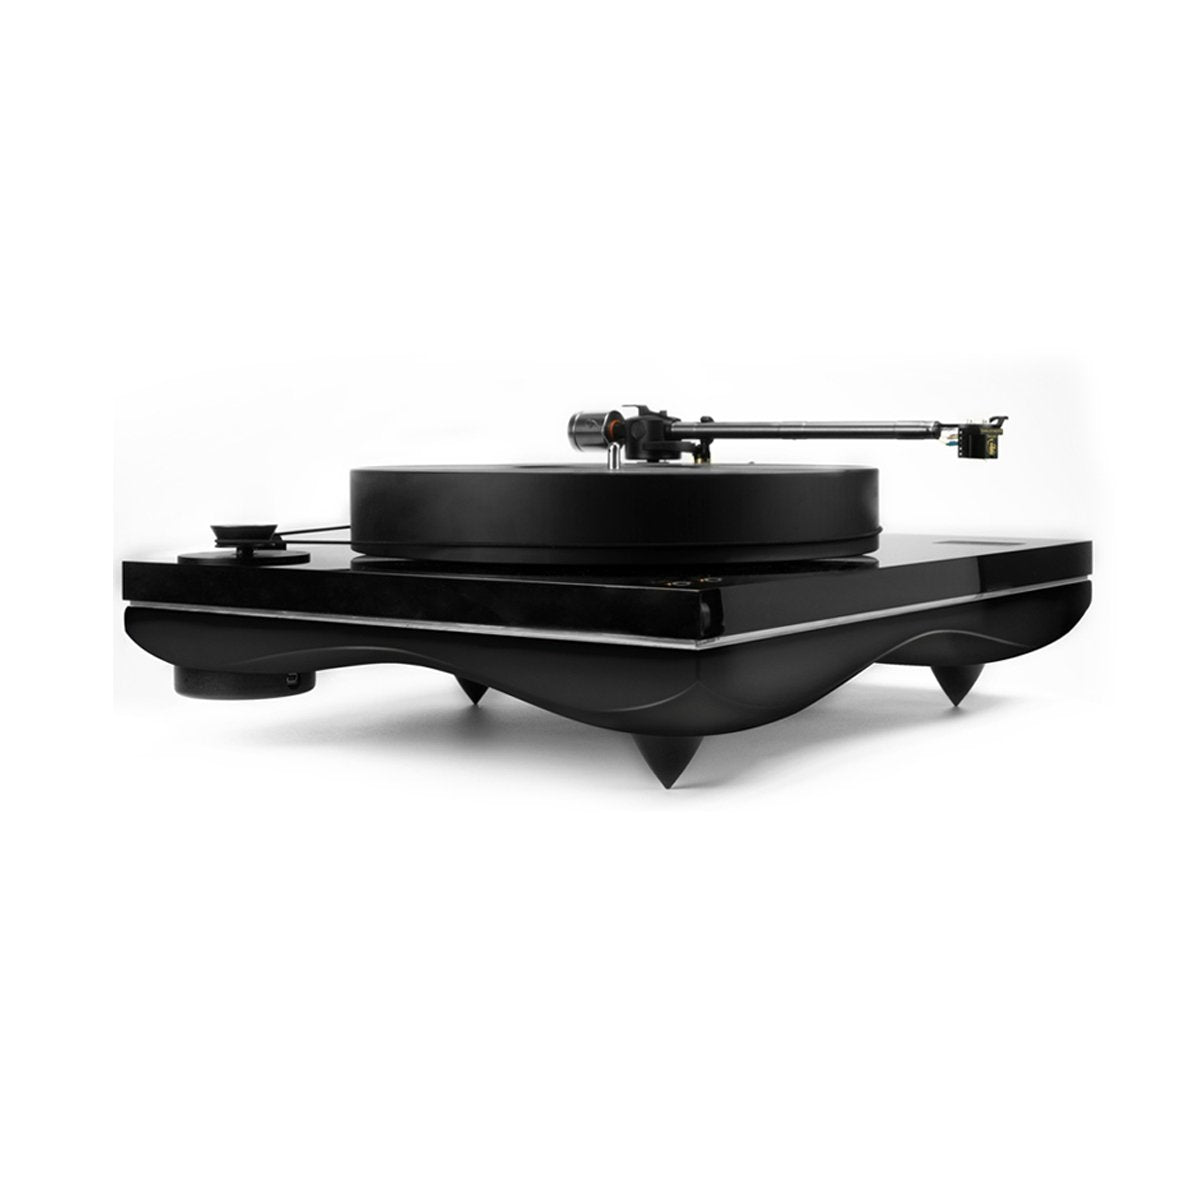 Gold Note Mediterraneo Turntable Black/White or Lacquer Finish